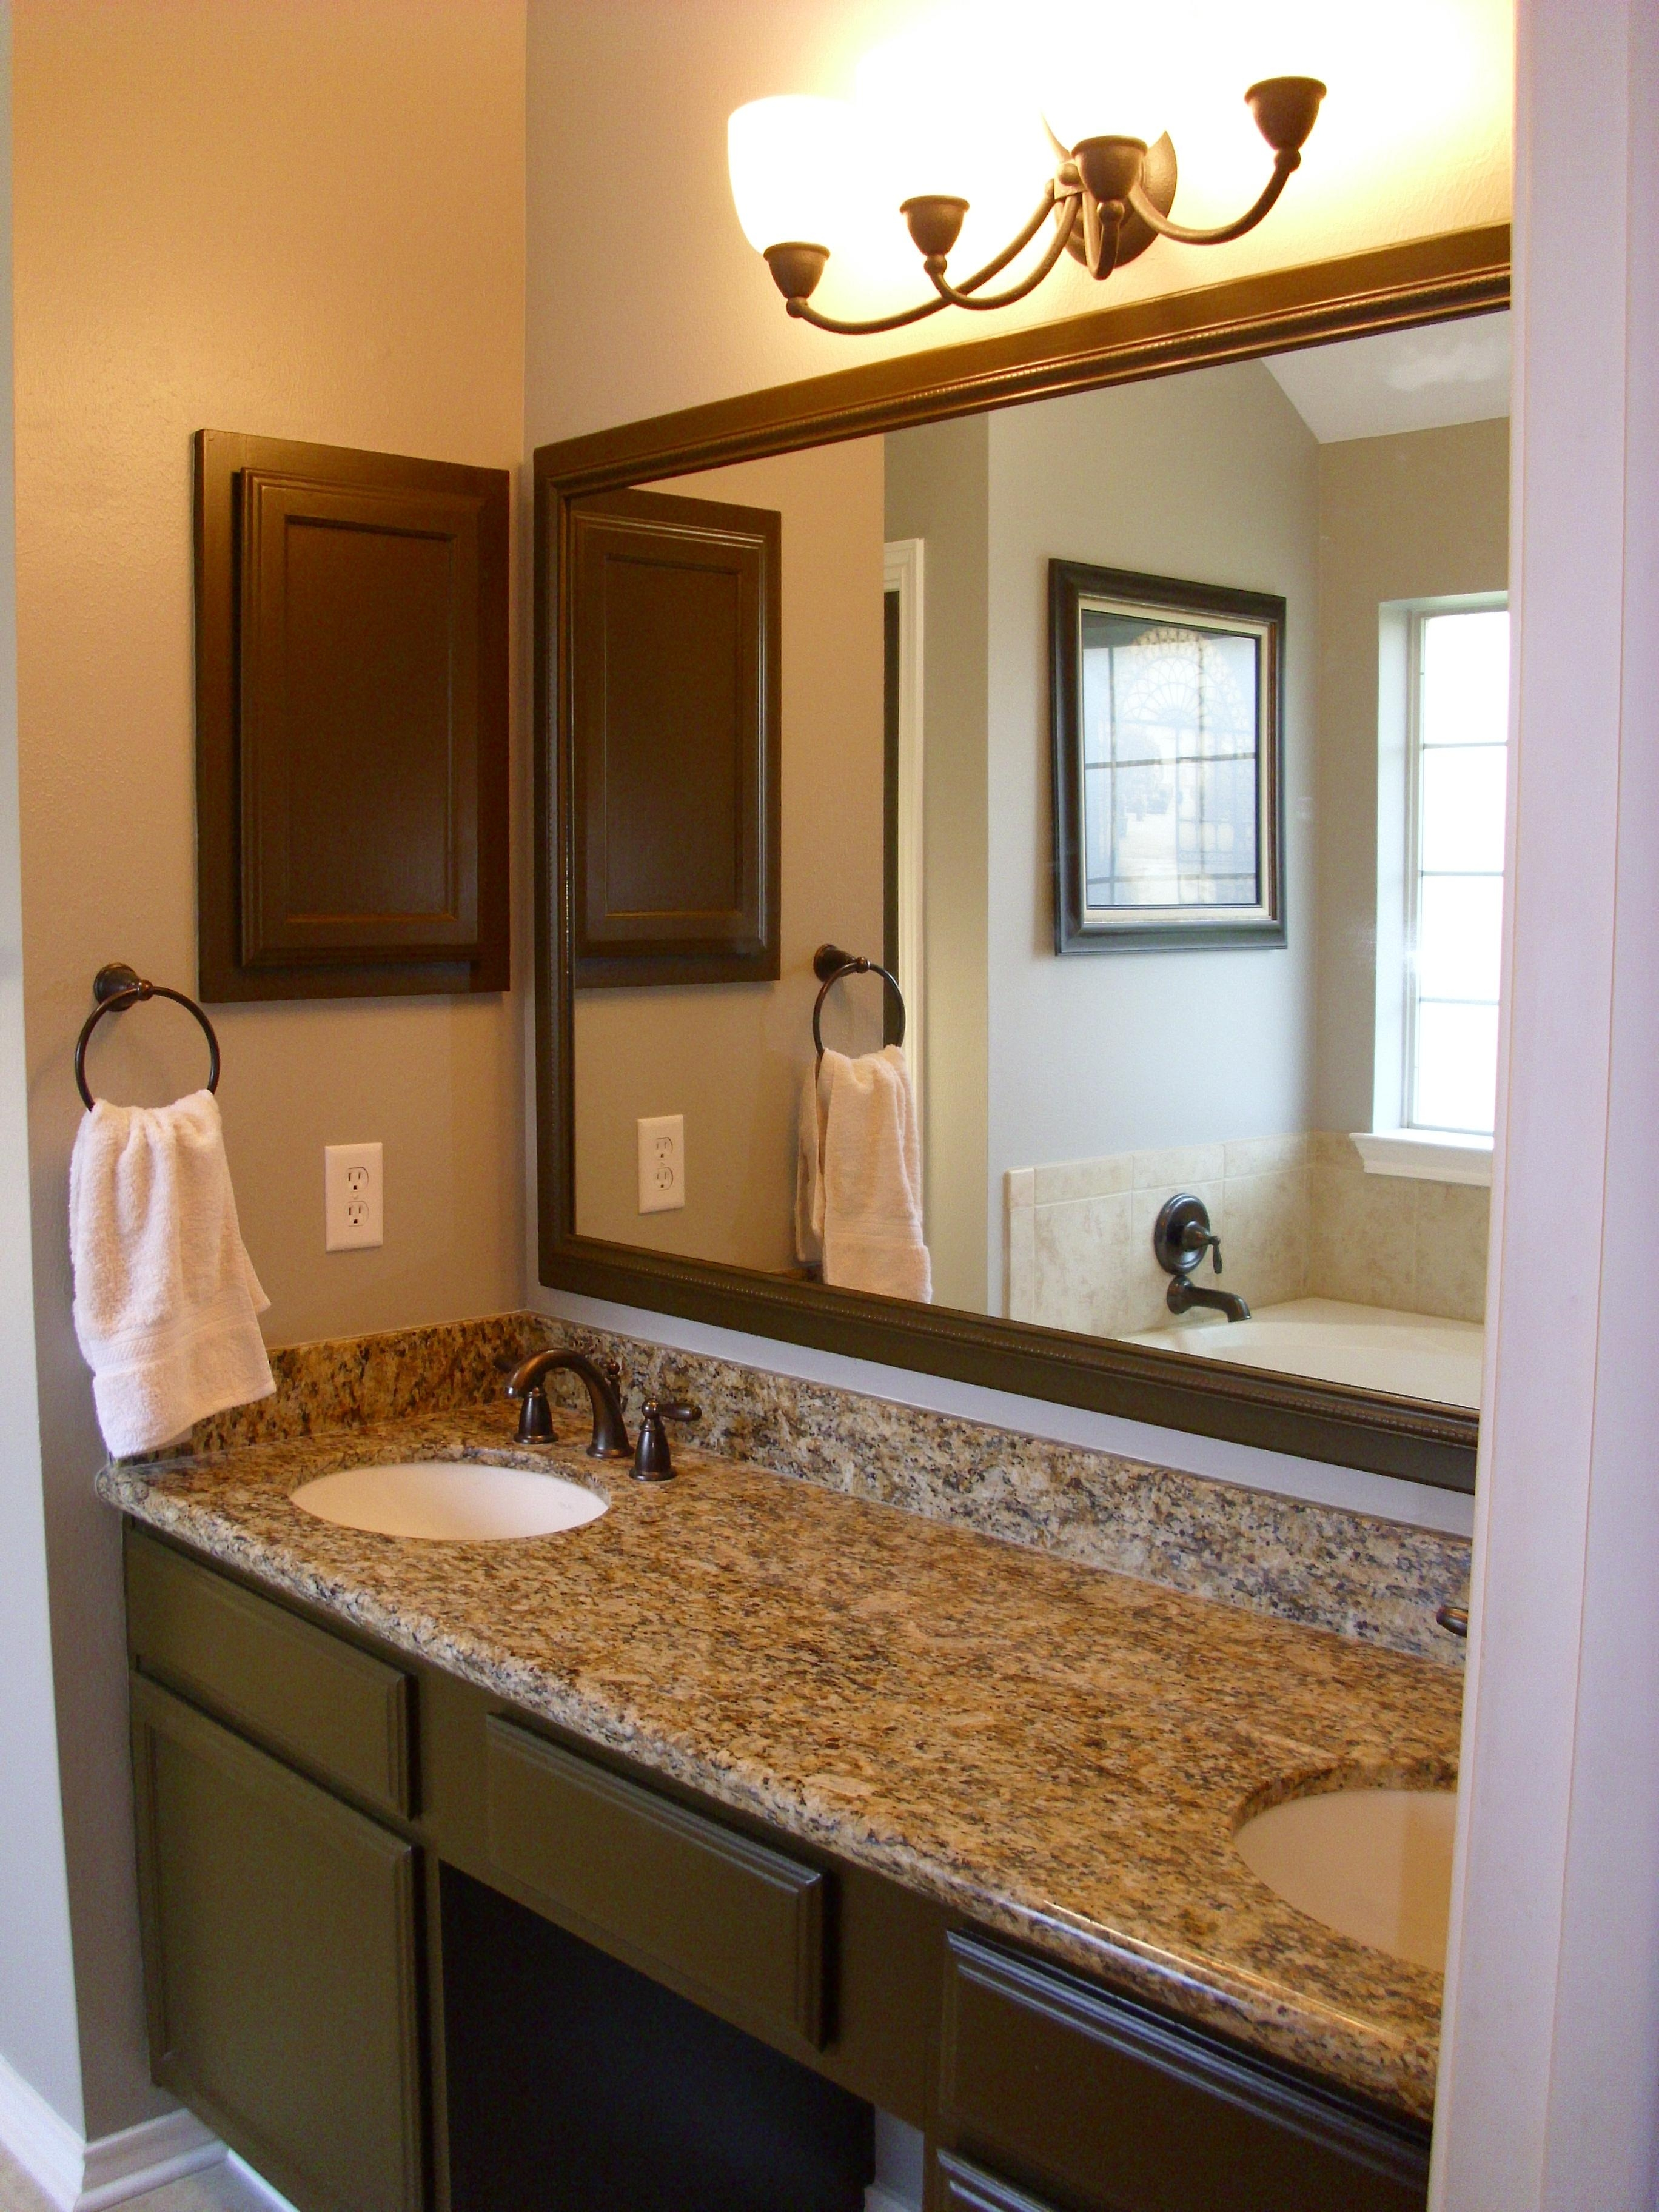 Hotel Bathroom Mirrors For Sqale Liquidators | Home With Regard To Hotel Mirrors (Image 10 of 20)